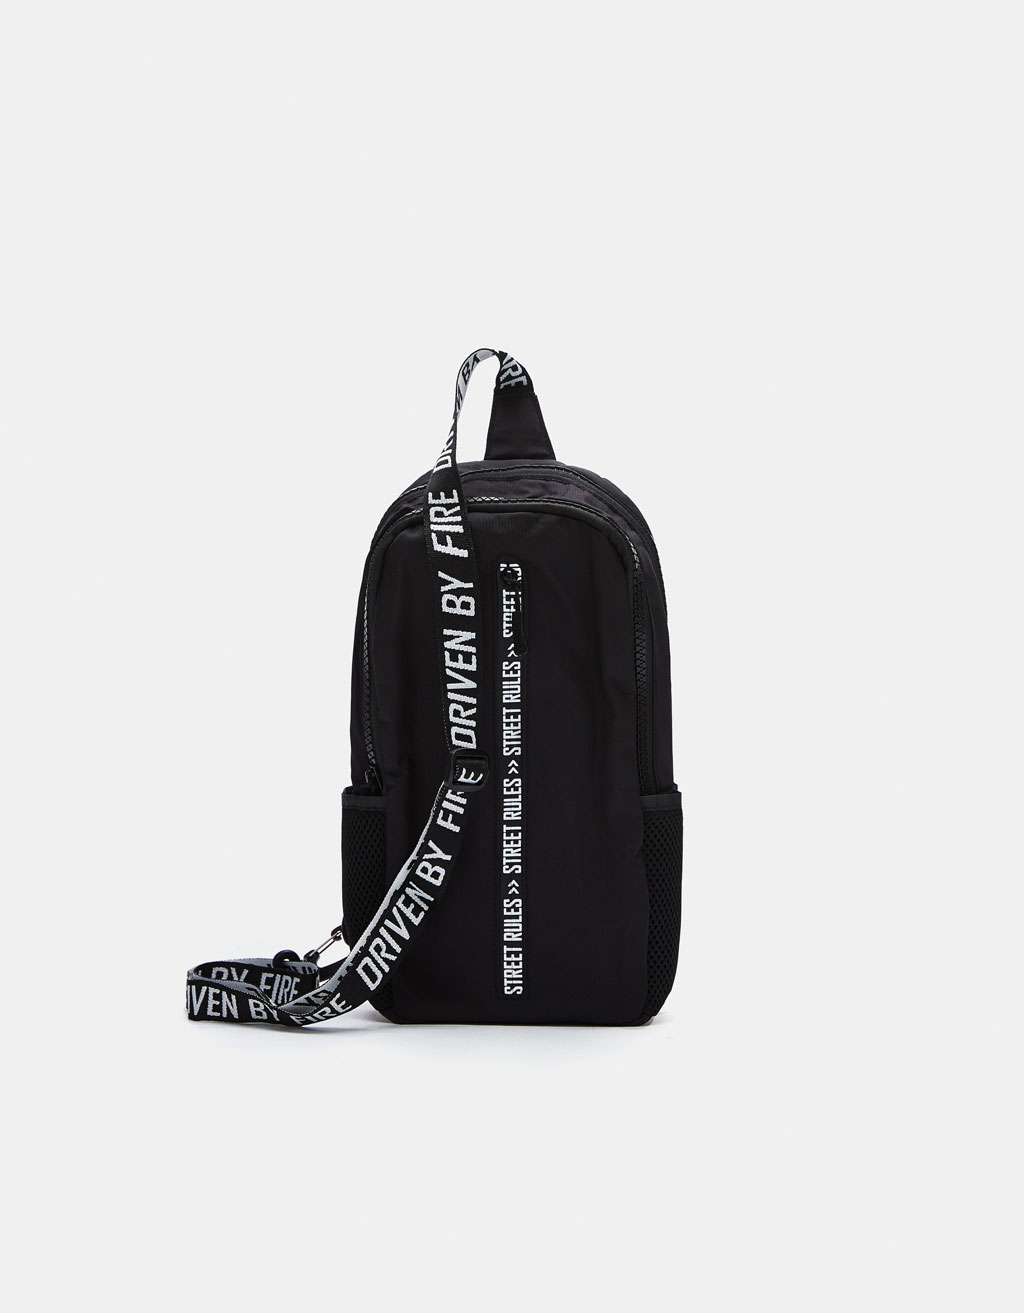 Crossbody backpack with slogan